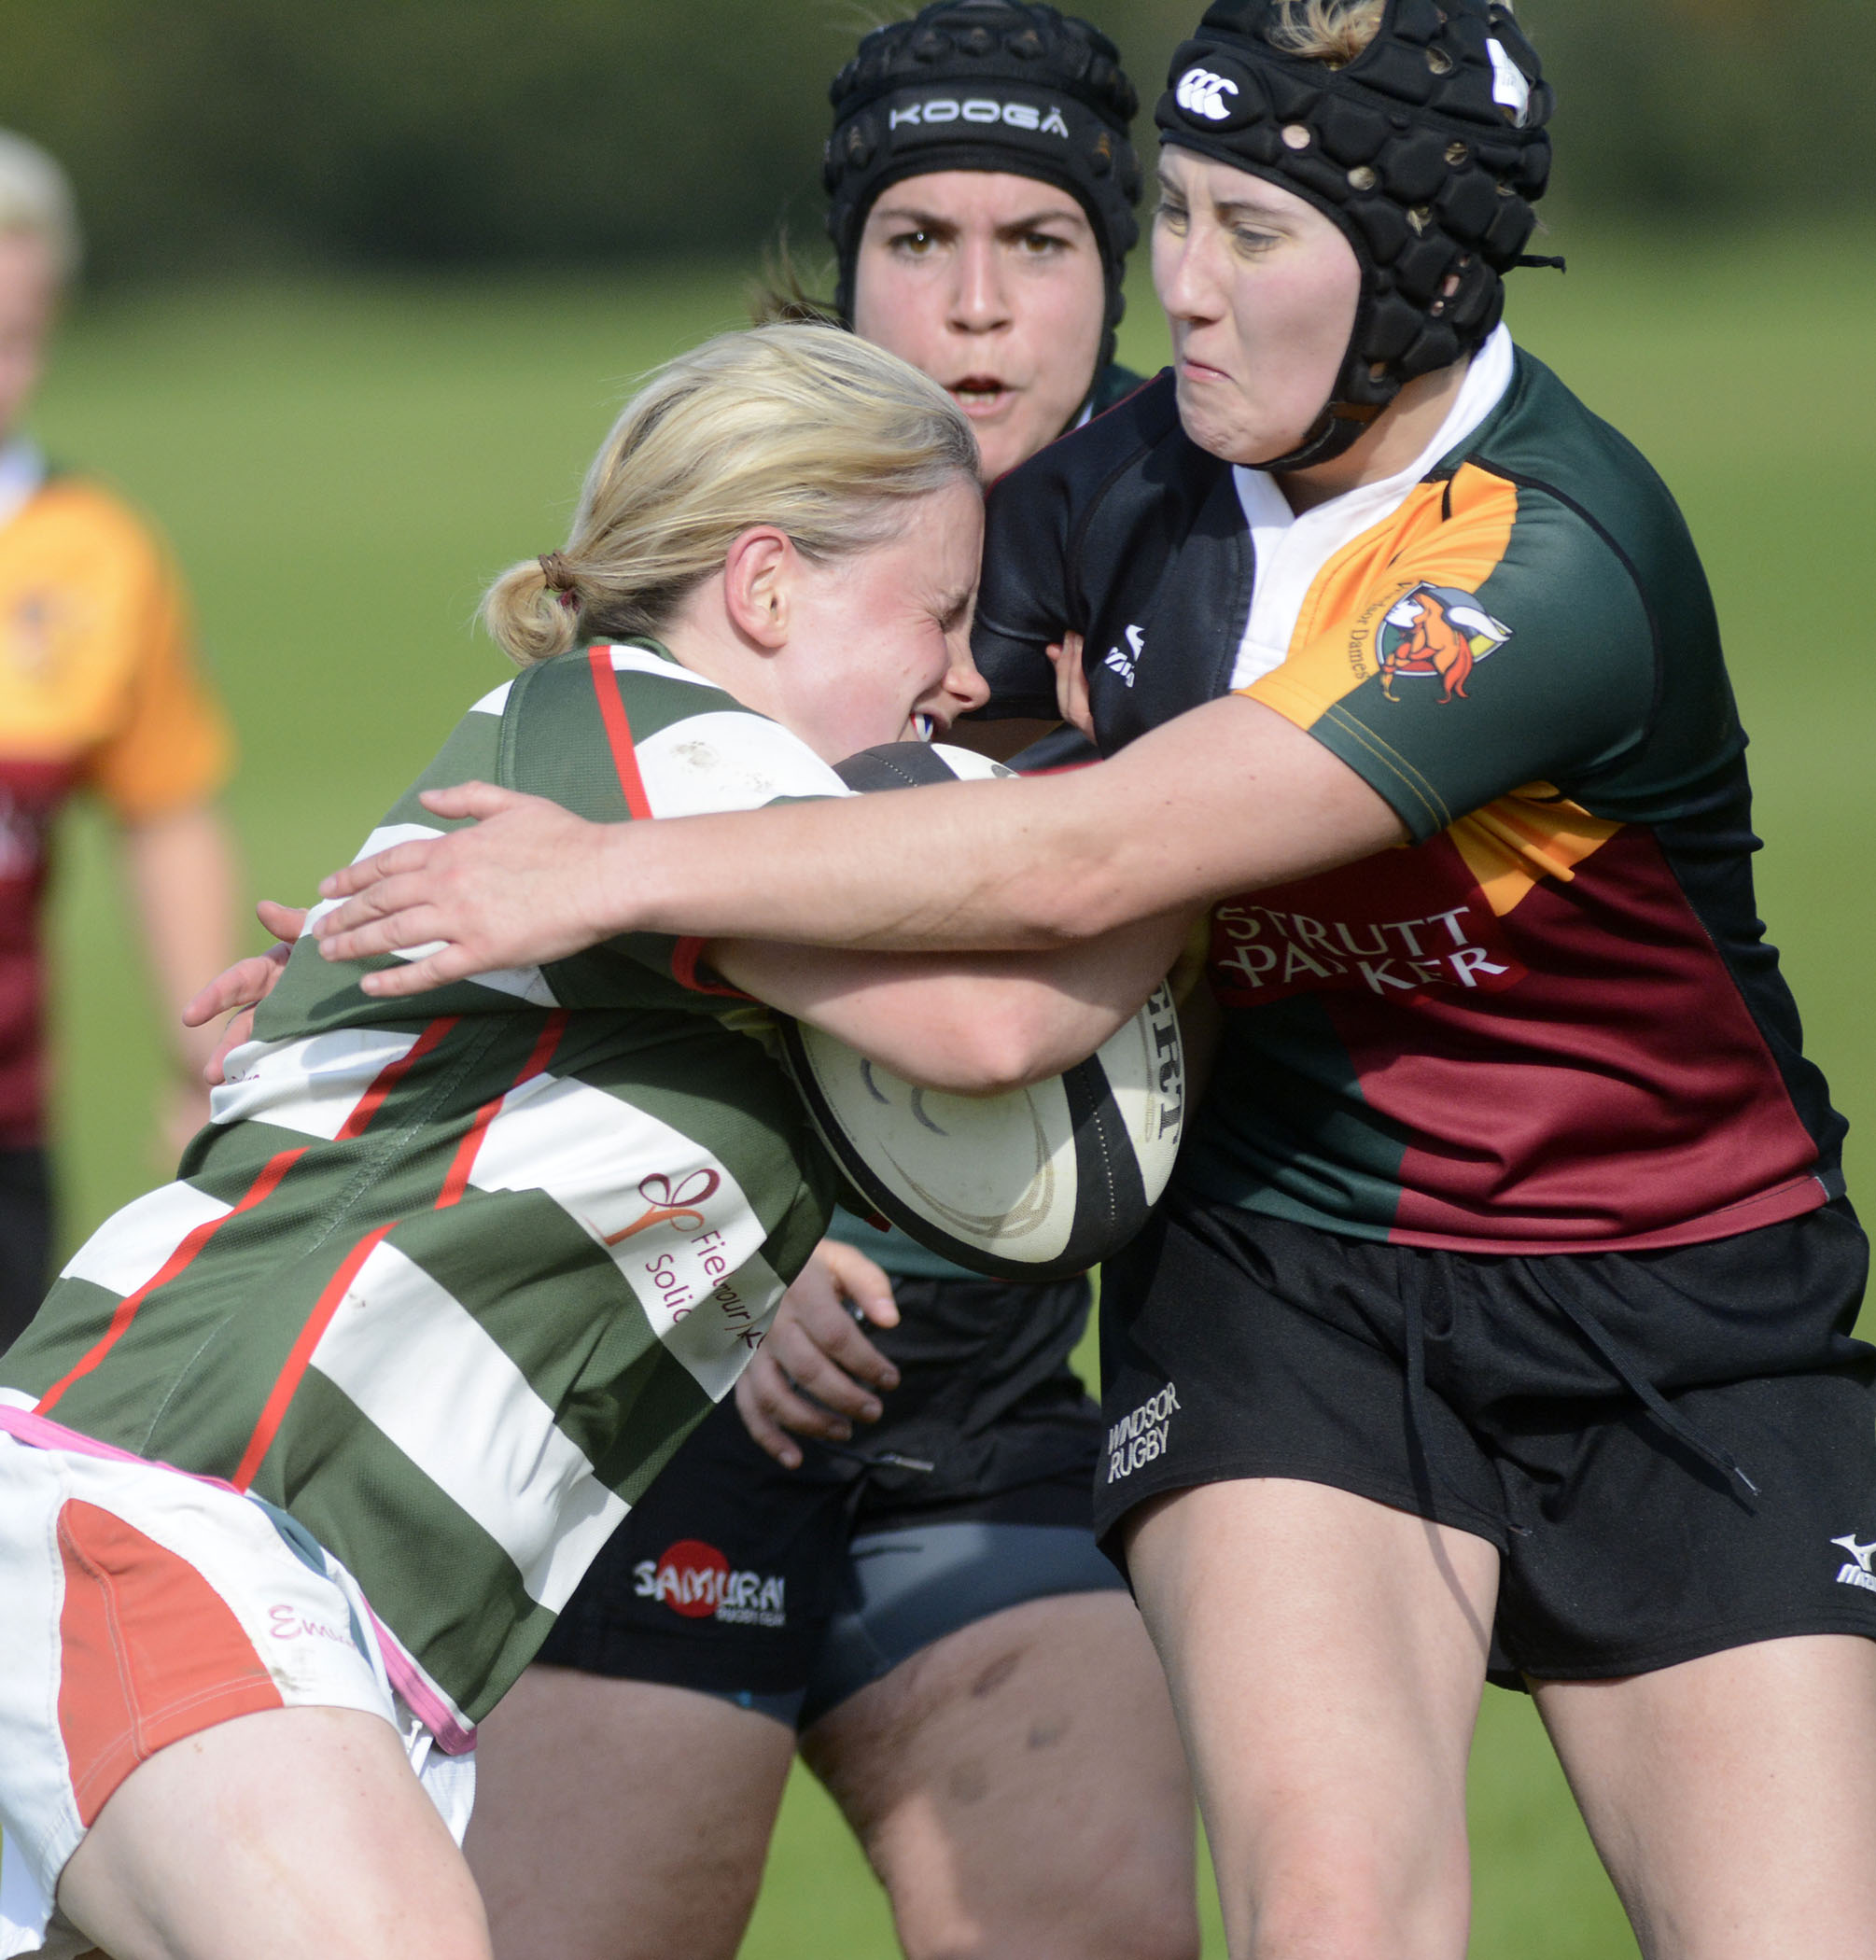 Windsor Dames have maintained their perfect start to the new season with a 20-18 win against Reading (hoops) on Sunday.